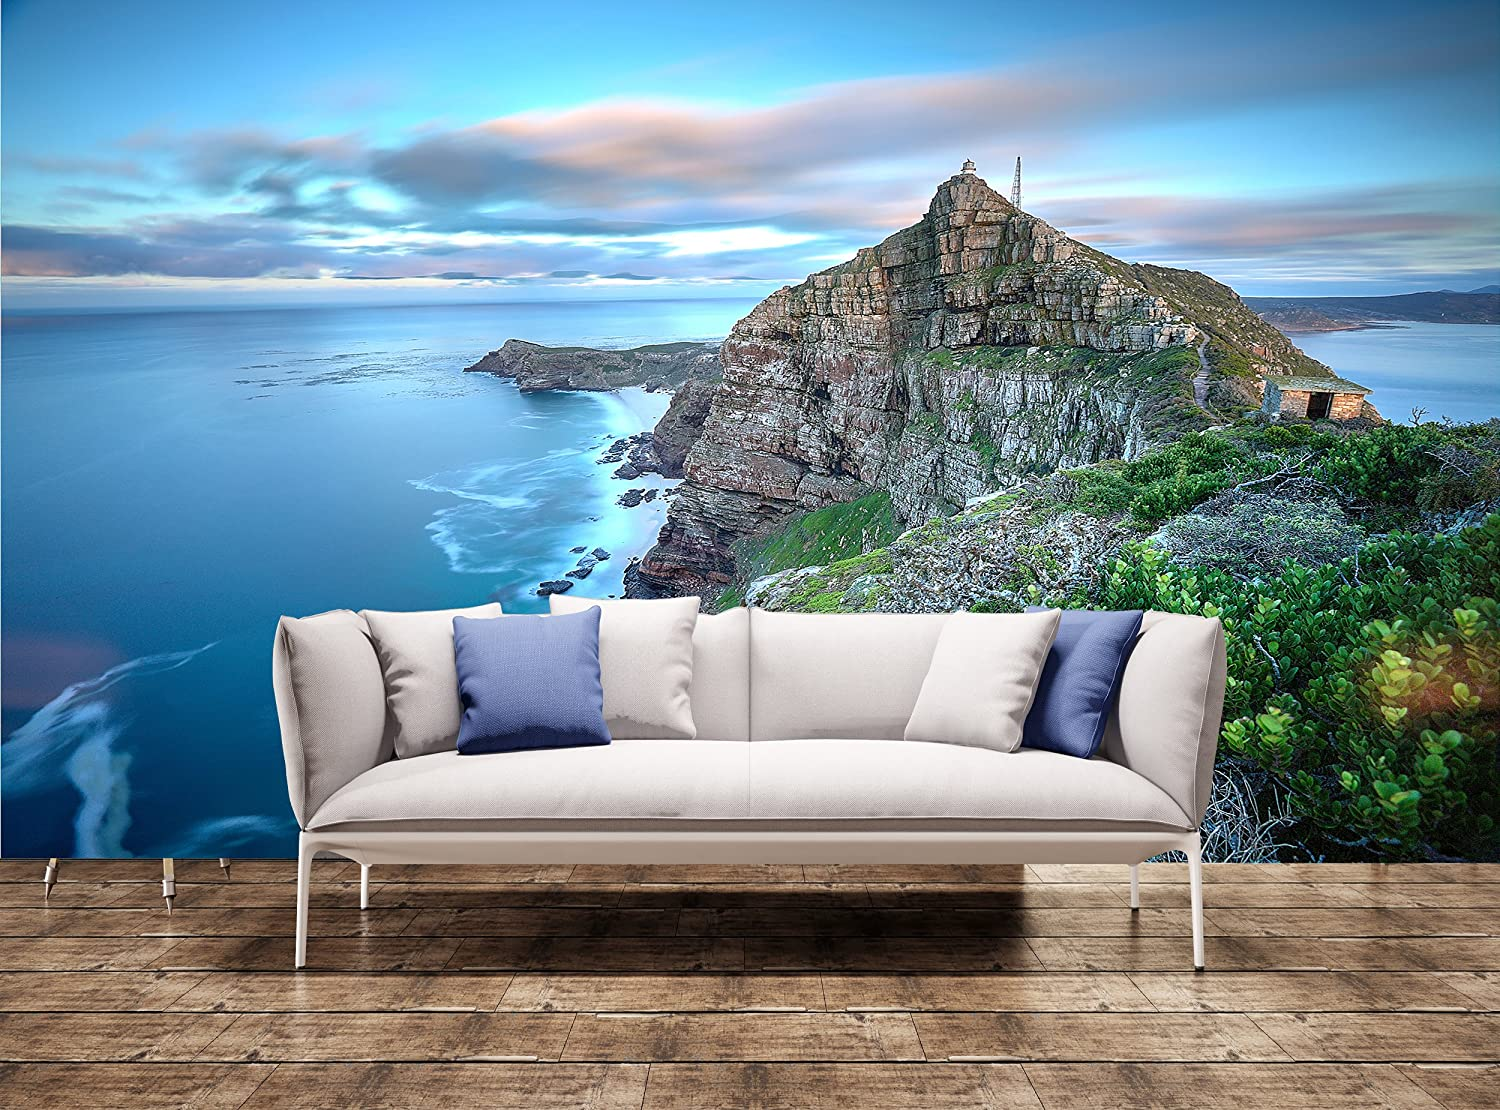 Home Decor Wall Art Cape Point South Africa Home Decor Wall Murals Amazon Com